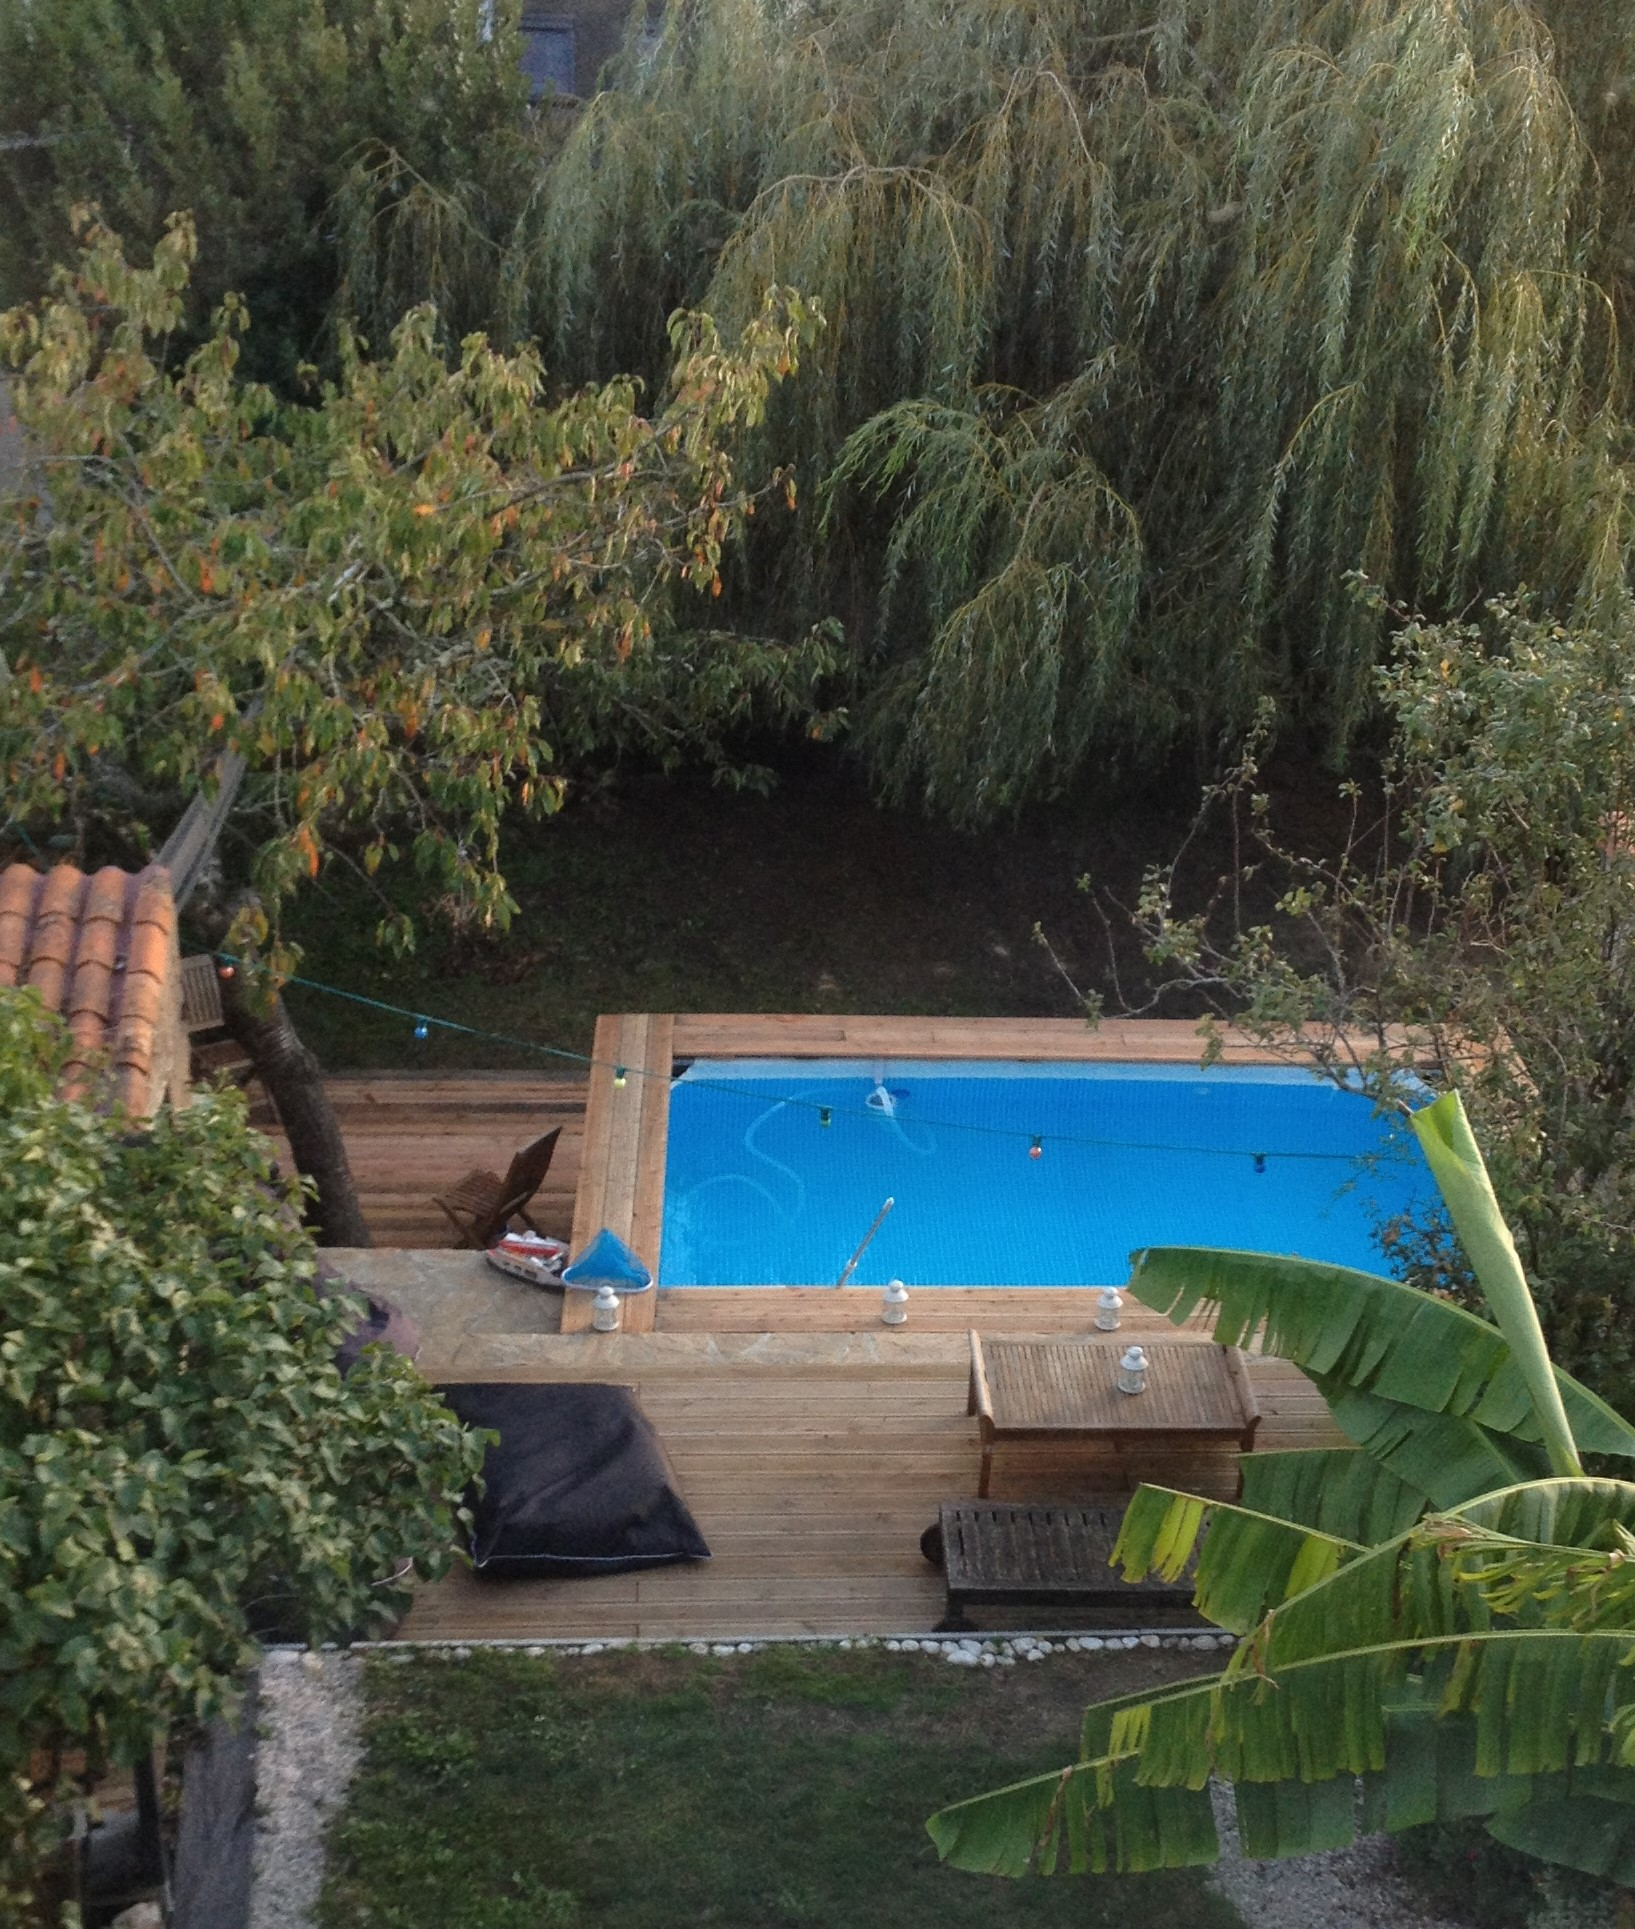 Comment encastrer sa piscine hors sol blog de raviday for Piscine hors sol tubulaire ronde